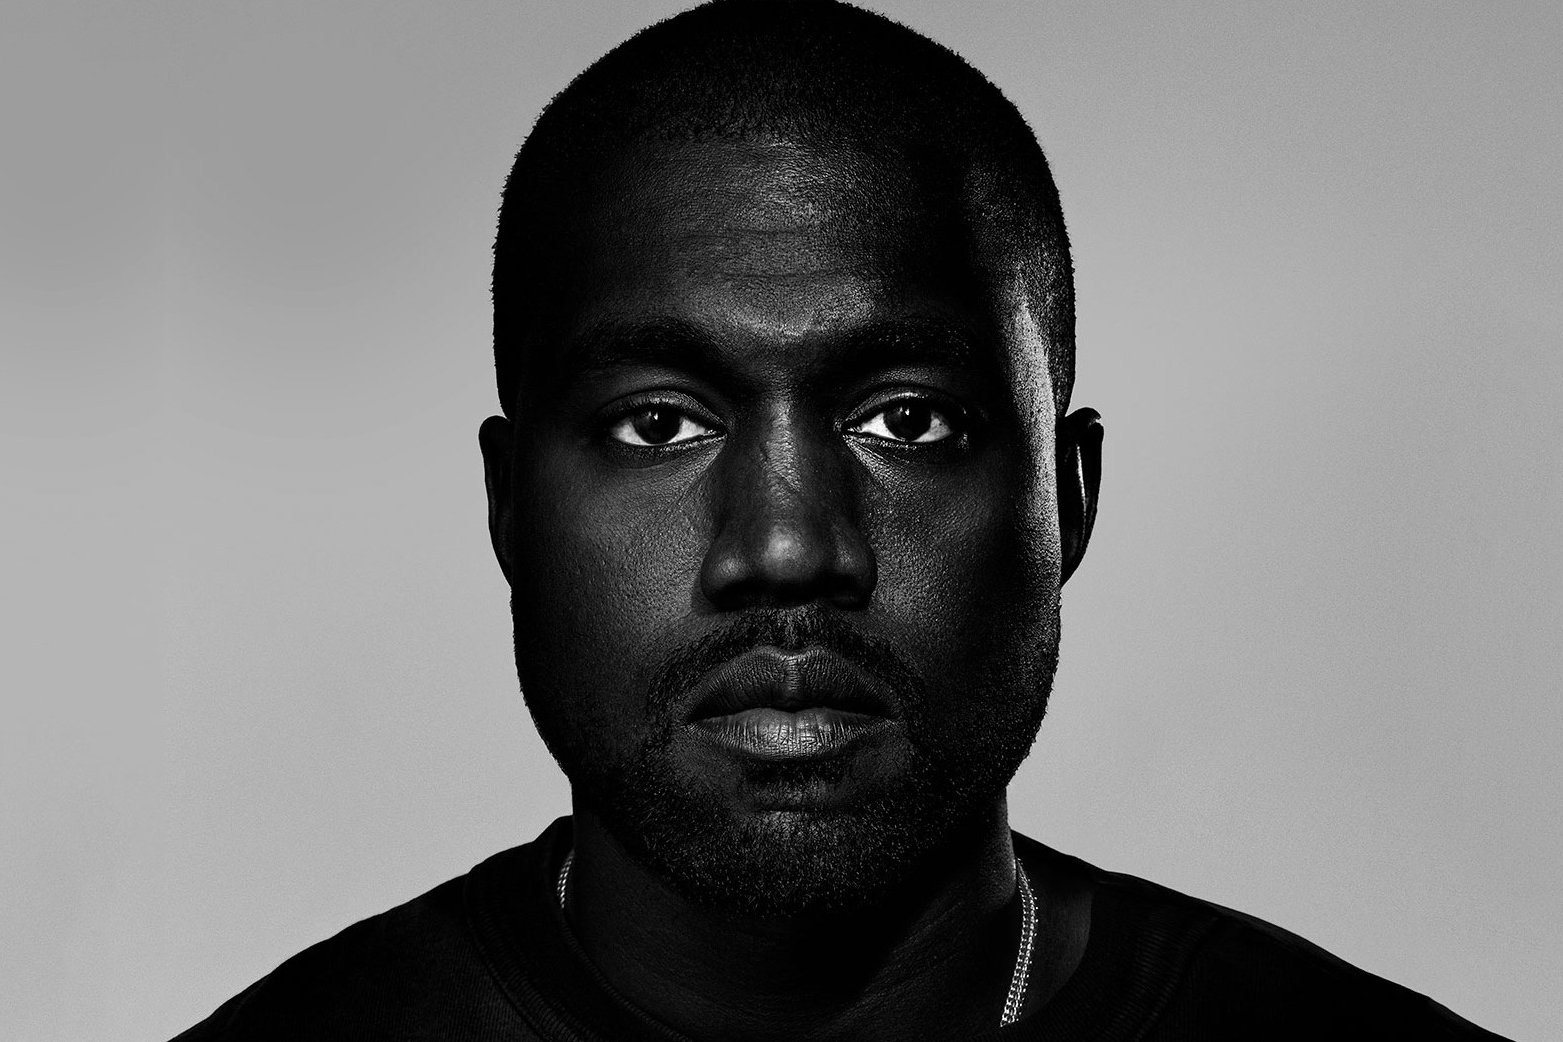 kanye-west-5150-involuntary-psychiatric-hold-1